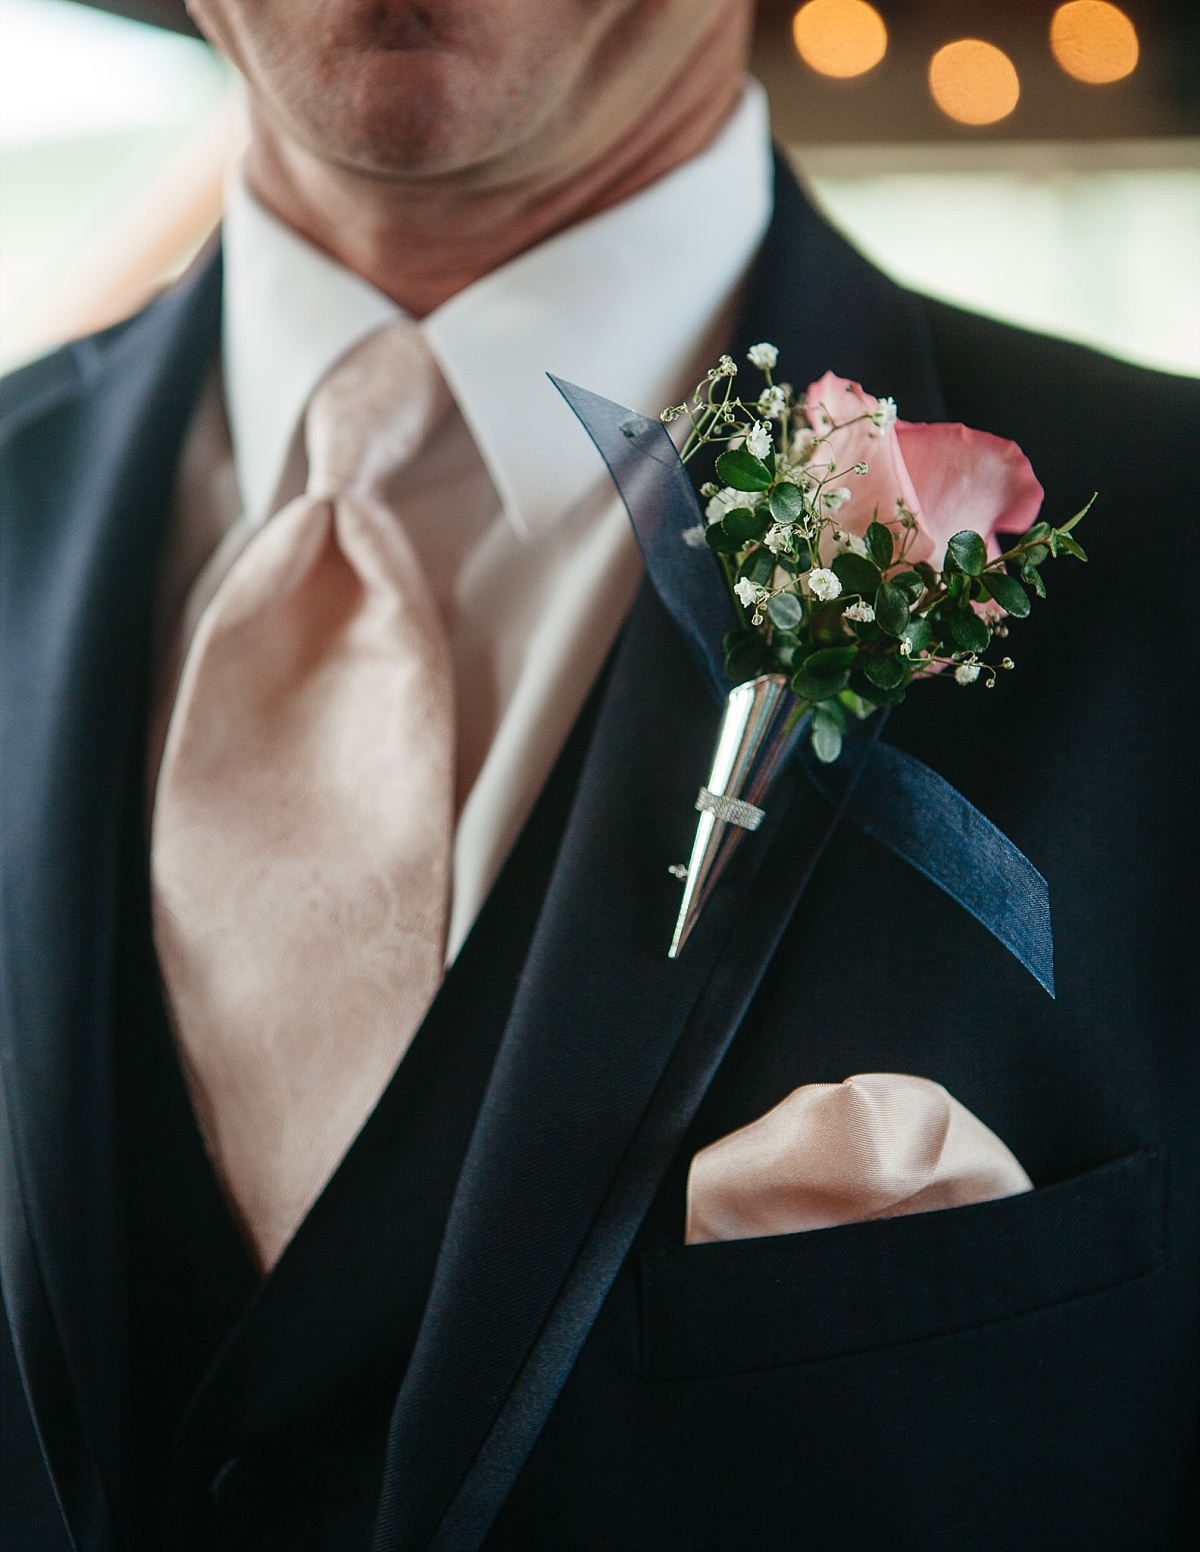 Jeremy ranch wedding groom boutonniere